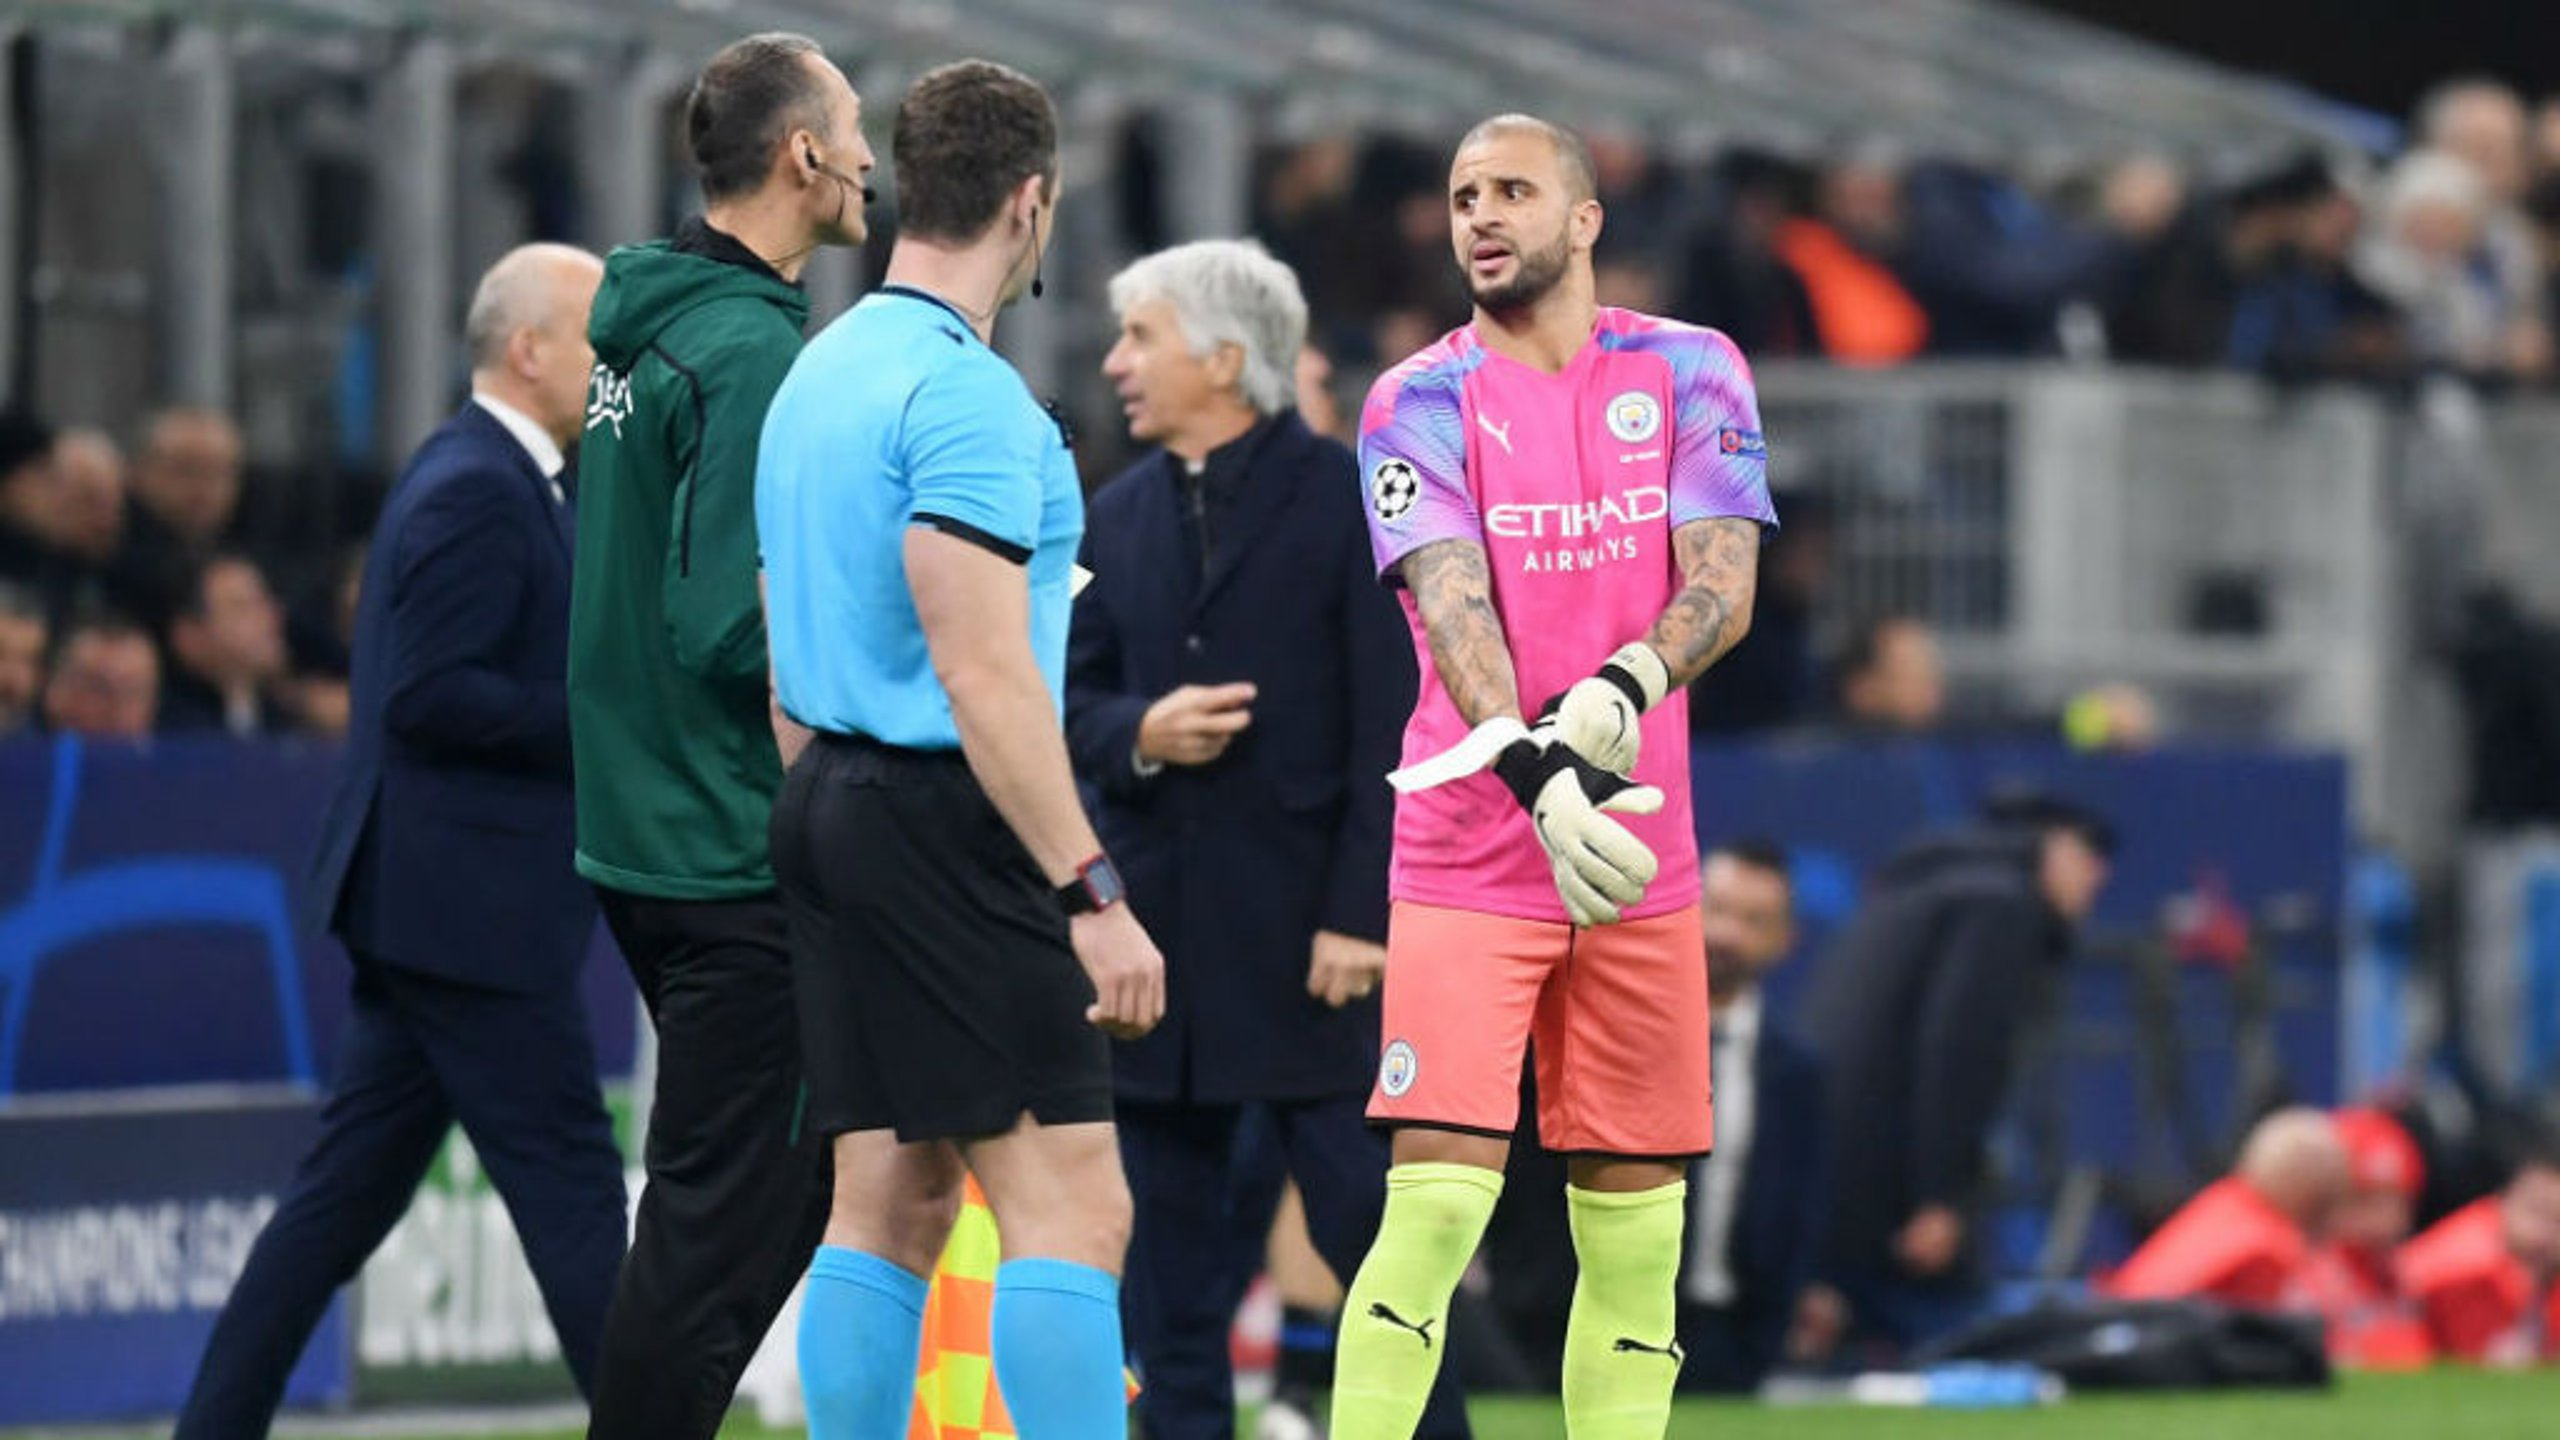 SUPER SUB: Kyle Walker came off the bench to deputise in goal for the last 10 minutes.